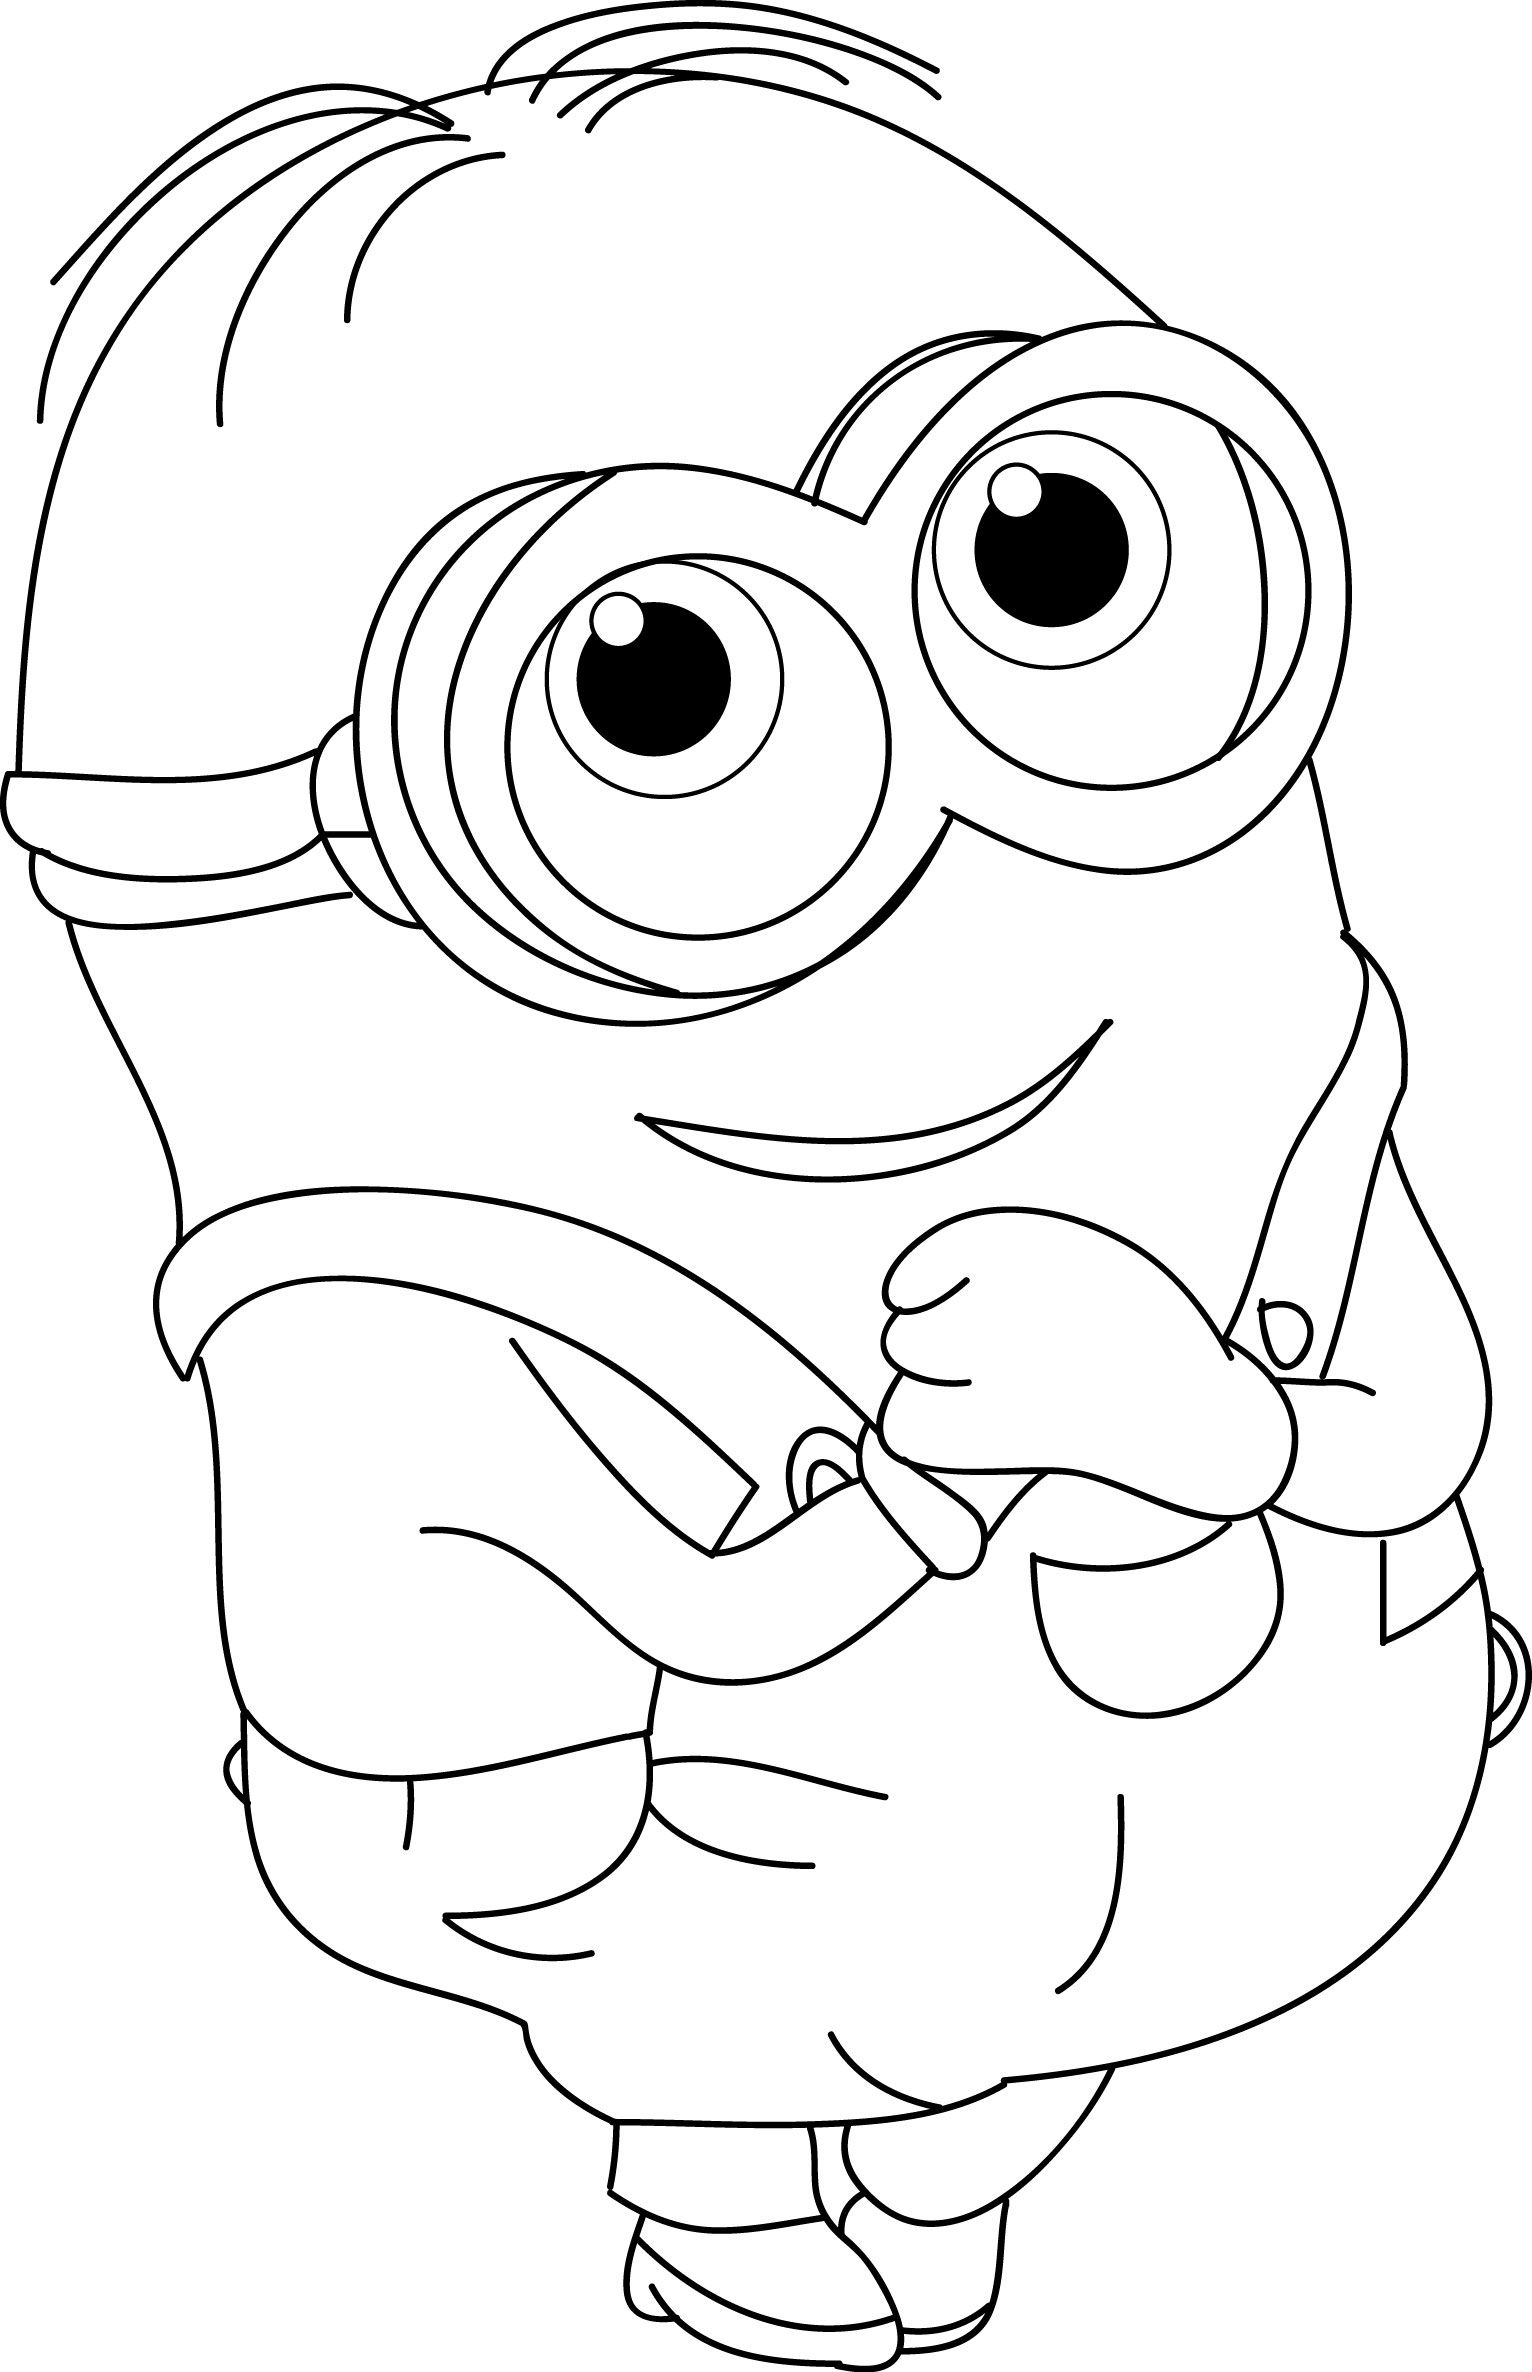 Free printable coloring pages graduation - The Minions Dave Coloring Page For Kids Free Printable Coloring Pages For Kids